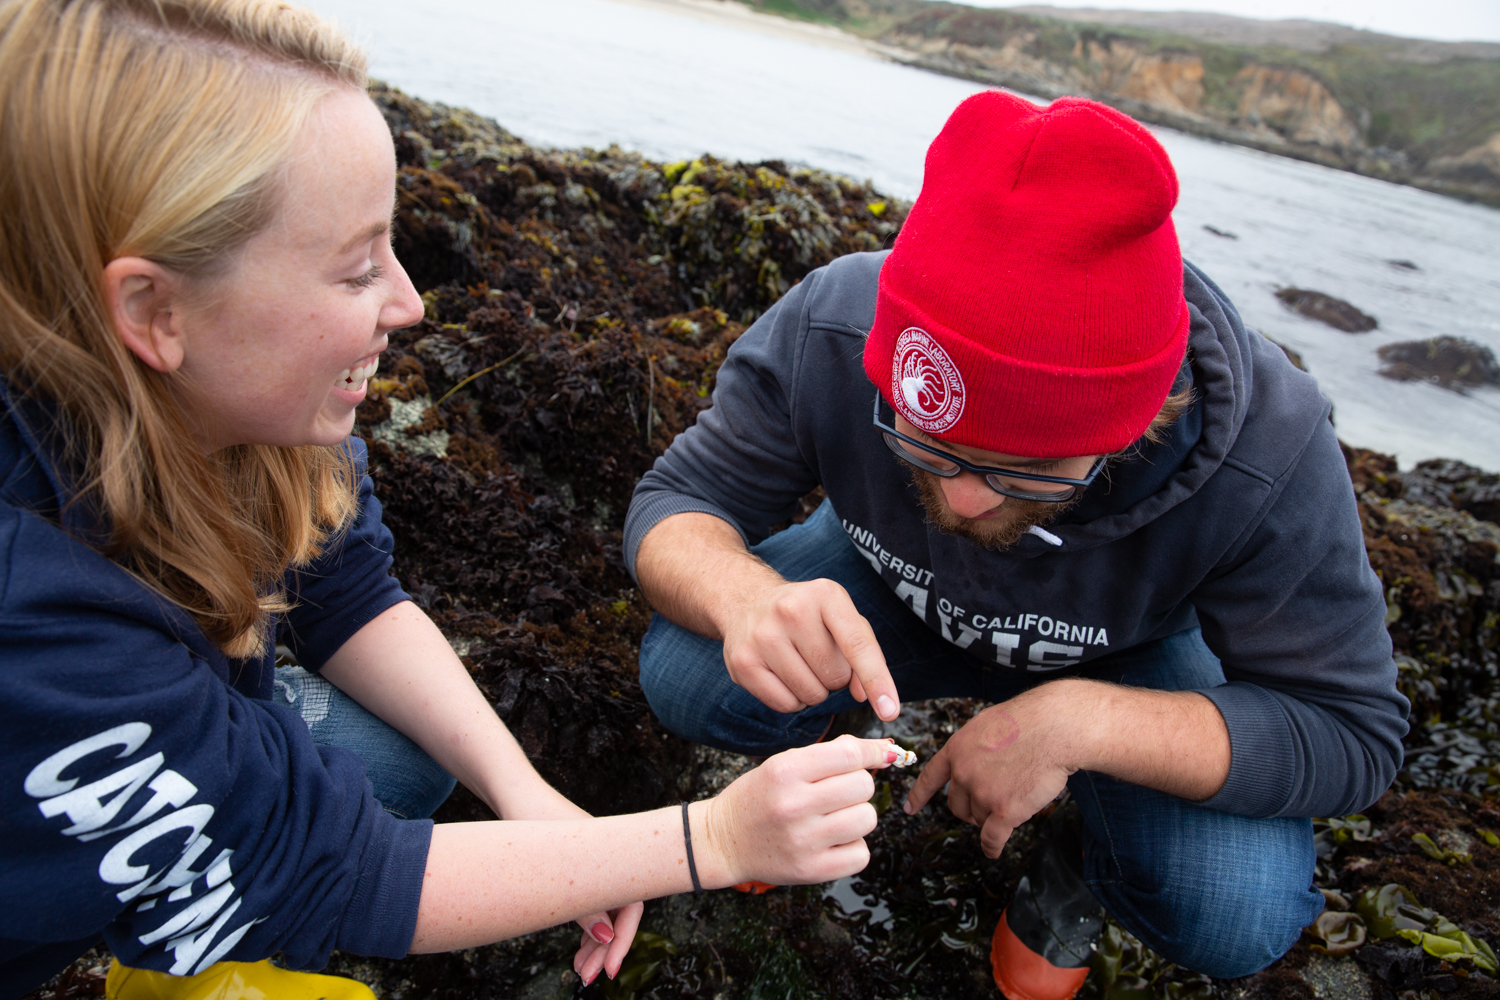 Evan Tjeerdema and Holley Maassen explore the tide pools near the Bodega Marine Laboratory